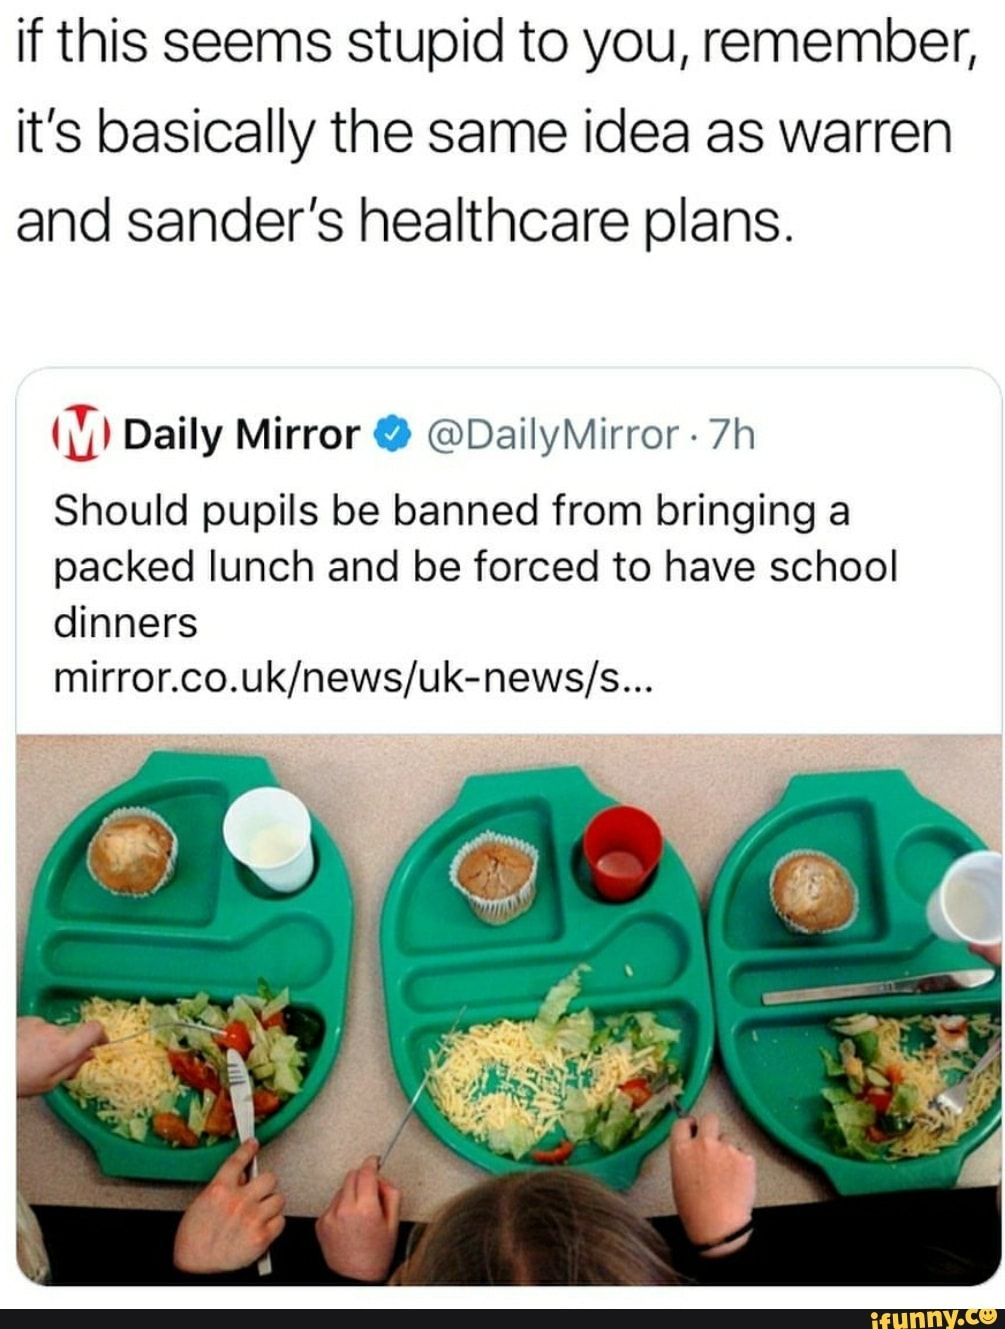 If This Seems Stupid To You Remember It S Basically The Same Idea As Warren And Sander S Healthcare Plans D Daily Mirror 0 Dailymirror 7h Should Pupils B Healthcare Plan Funny